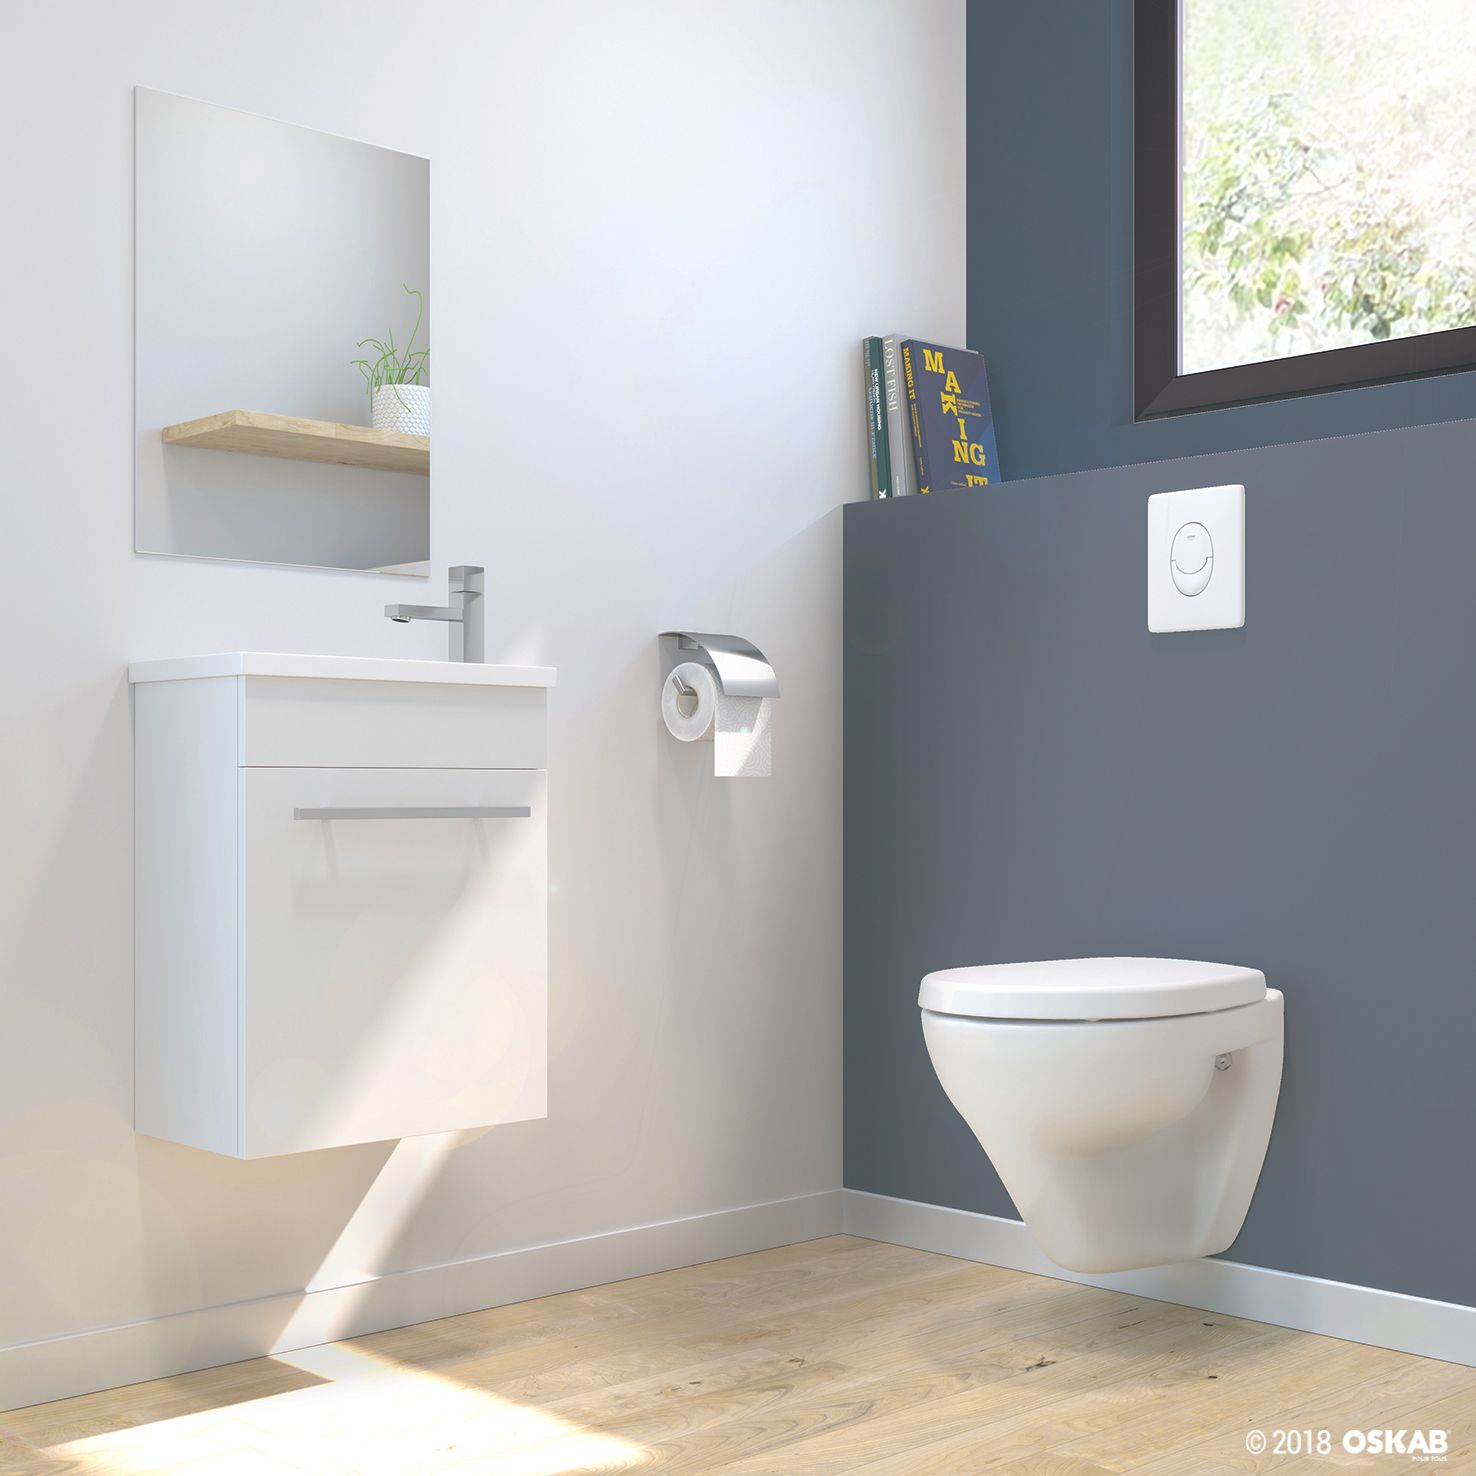 Pack Wc Grohe Suspendu Bati Mural Rapid Sl Cuvette Zapa Plaque Blanche Wc Suspendu Pack Wc Suspendu Suspendu